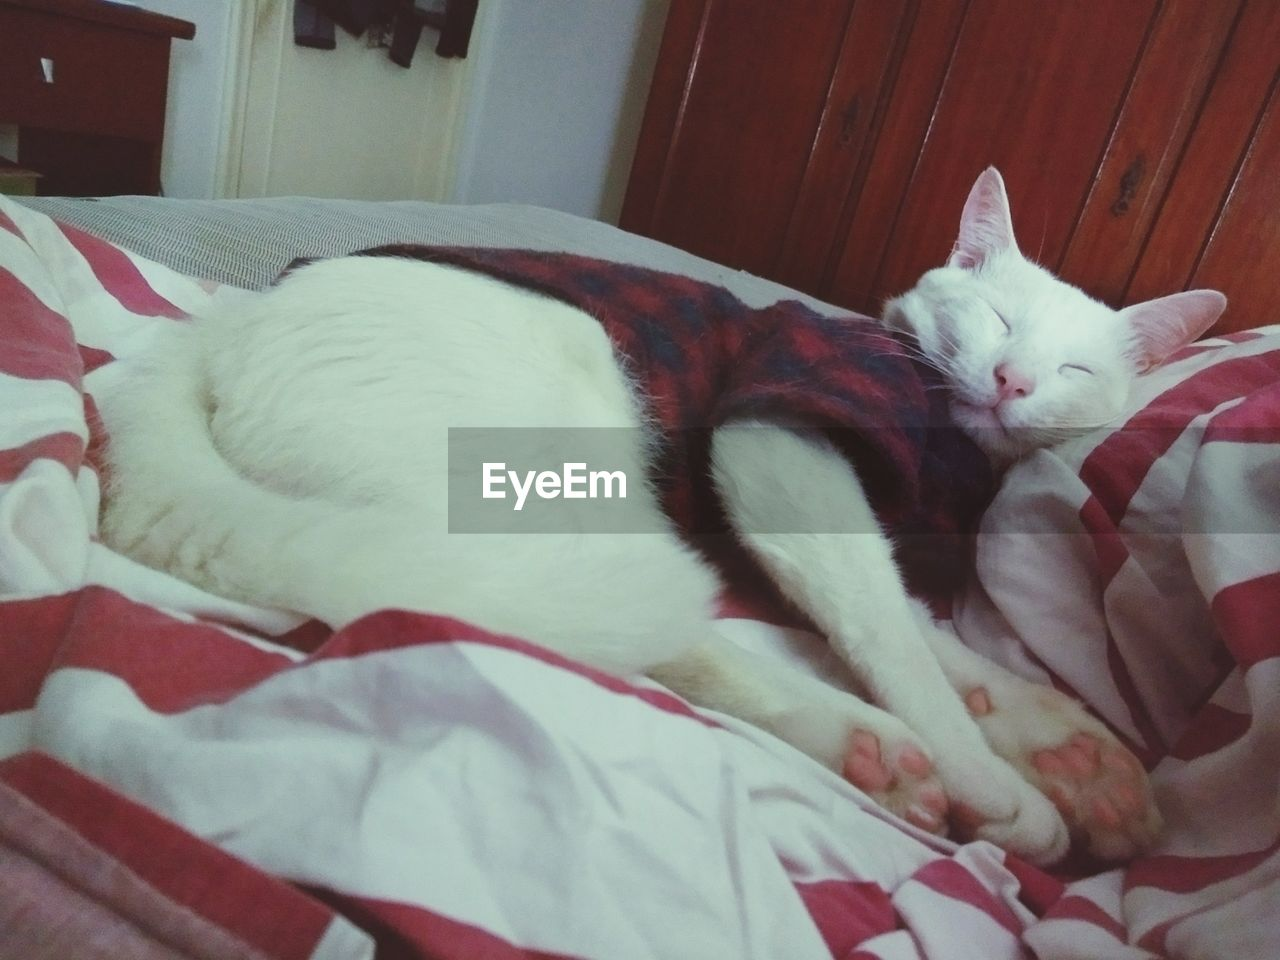 pets, domestic, domestic animals, mammal, animal themes, animal, one animal, vertebrate, relaxation, indoors, bed, domestic cat, cat, sleeping, resting, feline, furniture, no people, lying down, close-up, whisker, duvet